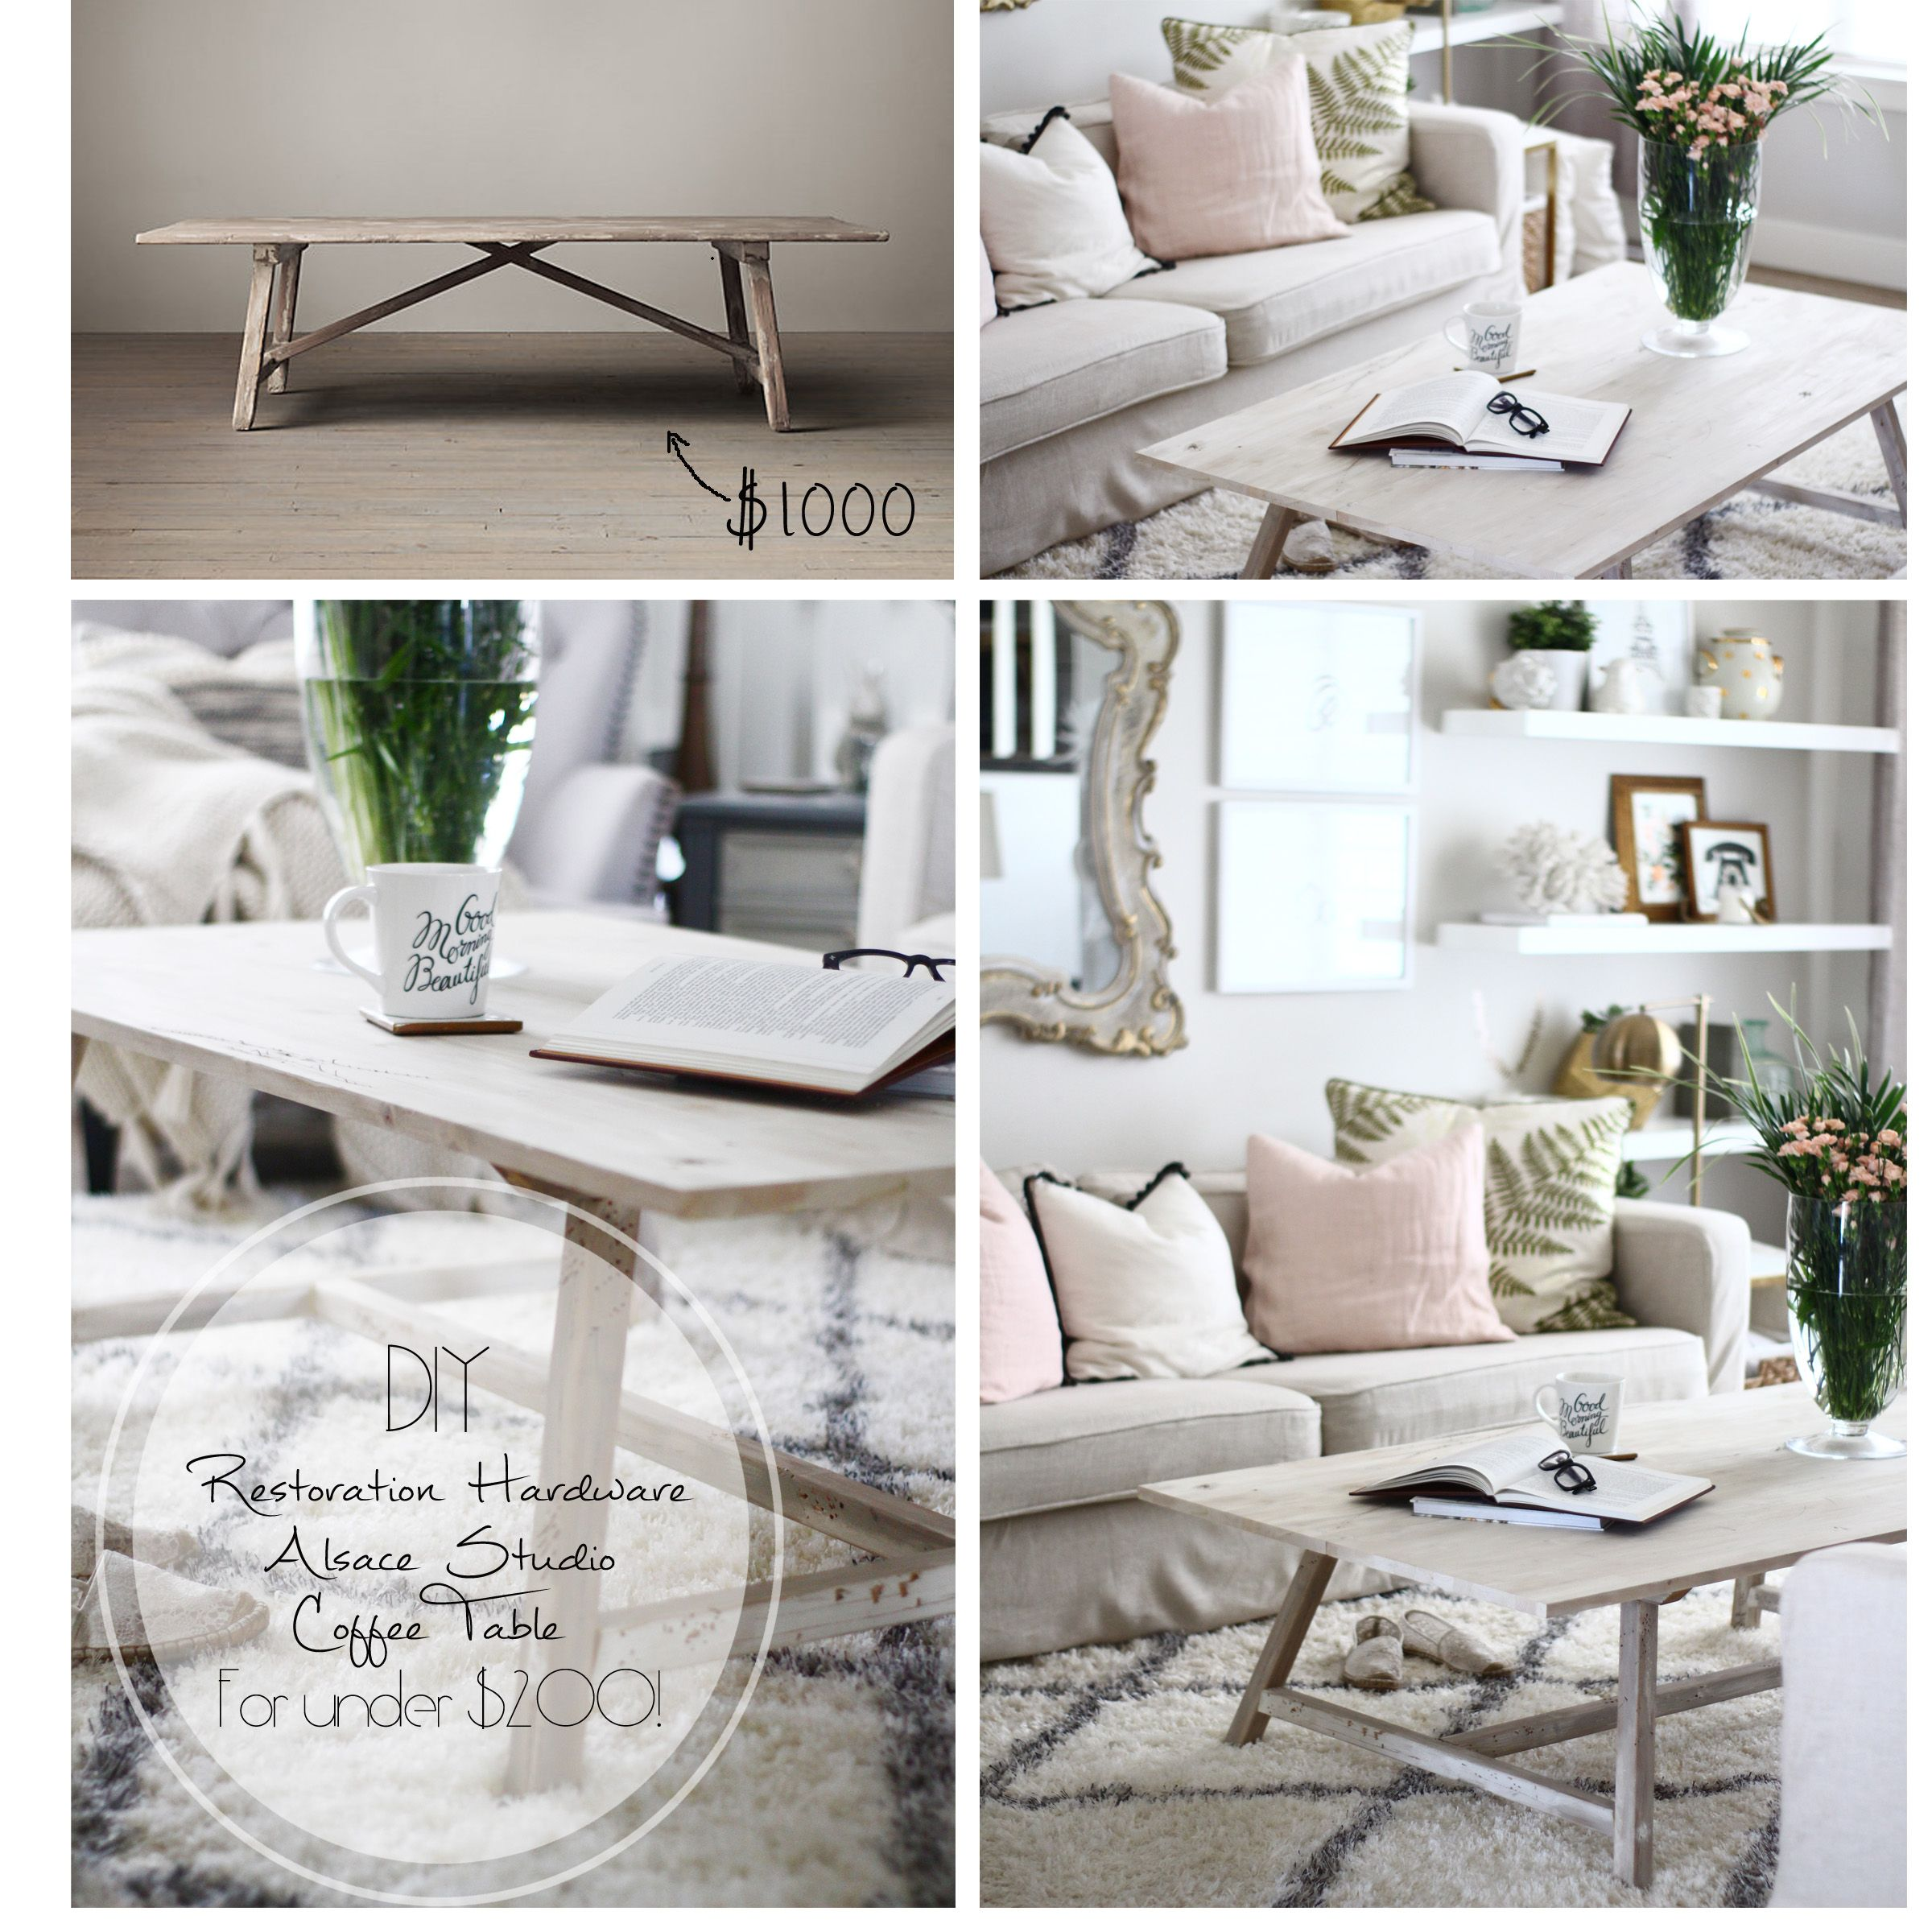 restoration hardware coffee table DIY | Craft Projects | Pinterest ...